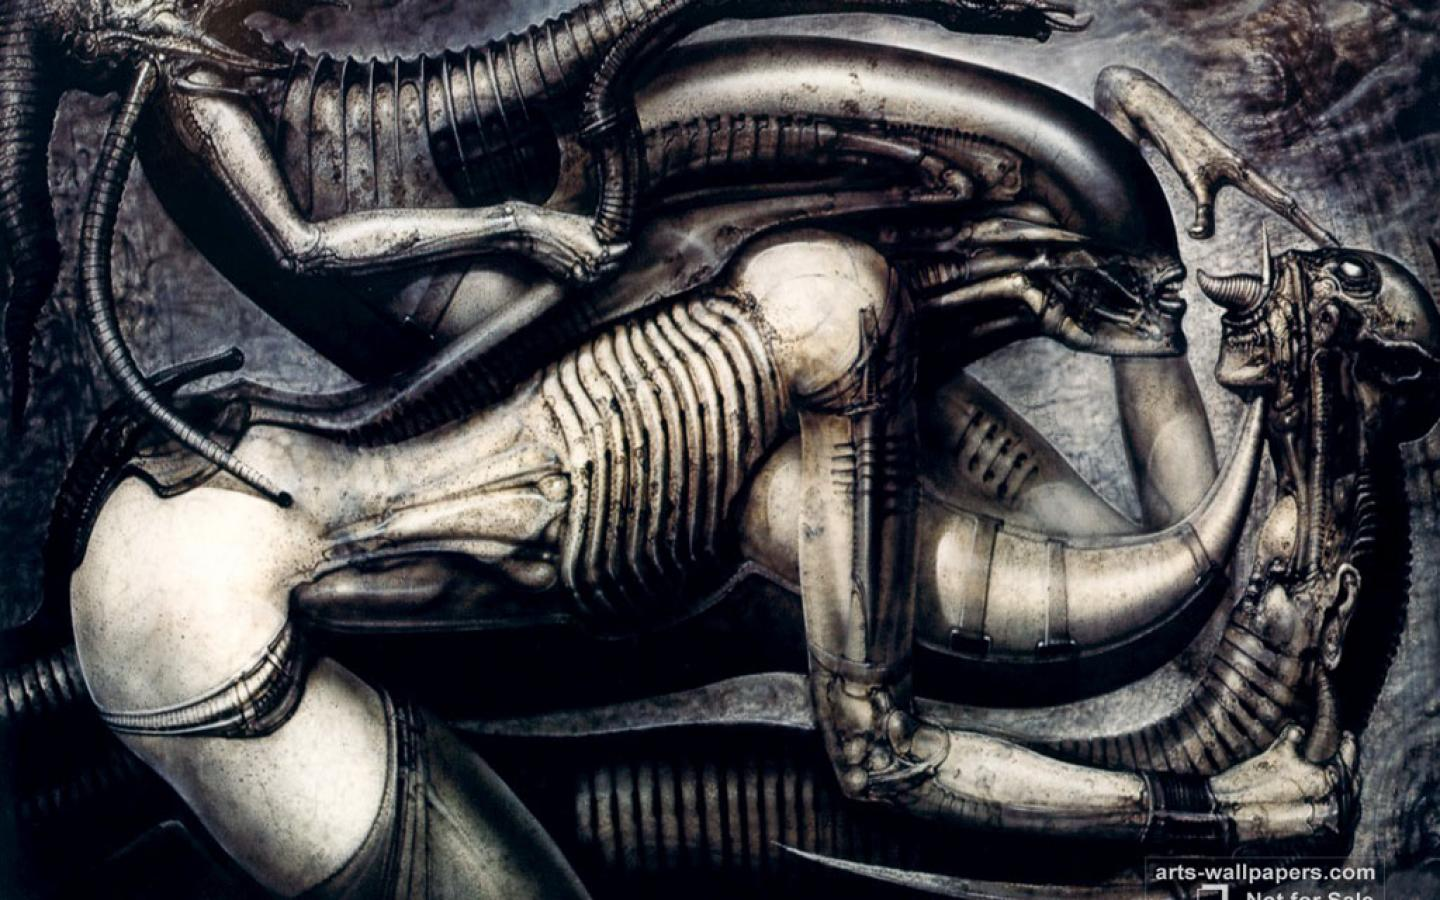 giger wallpaper hr hd - photo #21